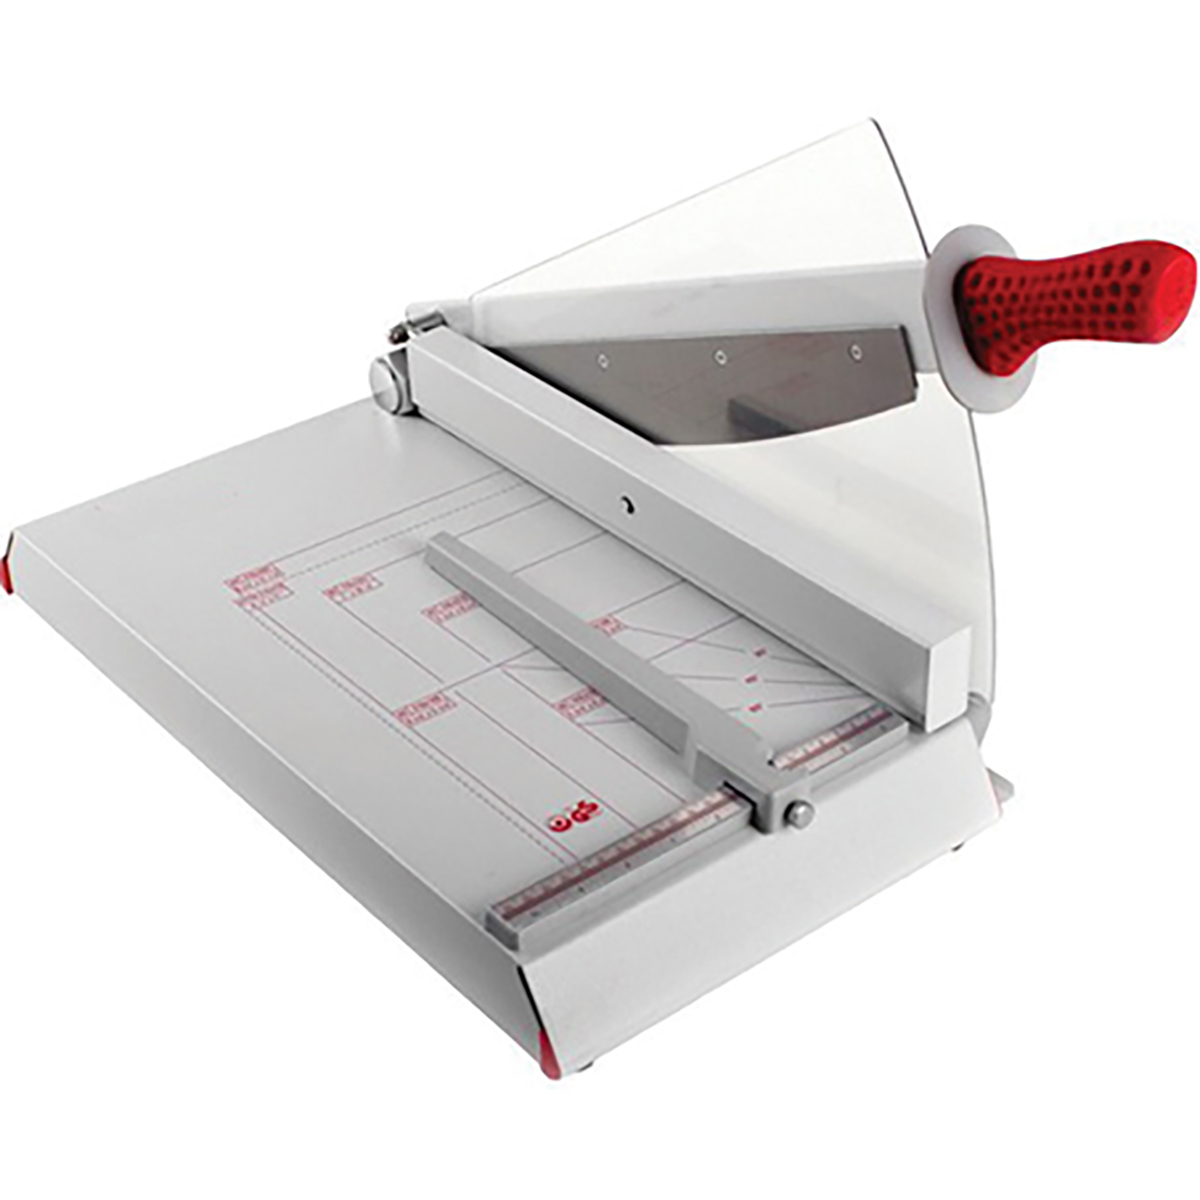 Intimus 363 A4 Table Top Lever Trimmer